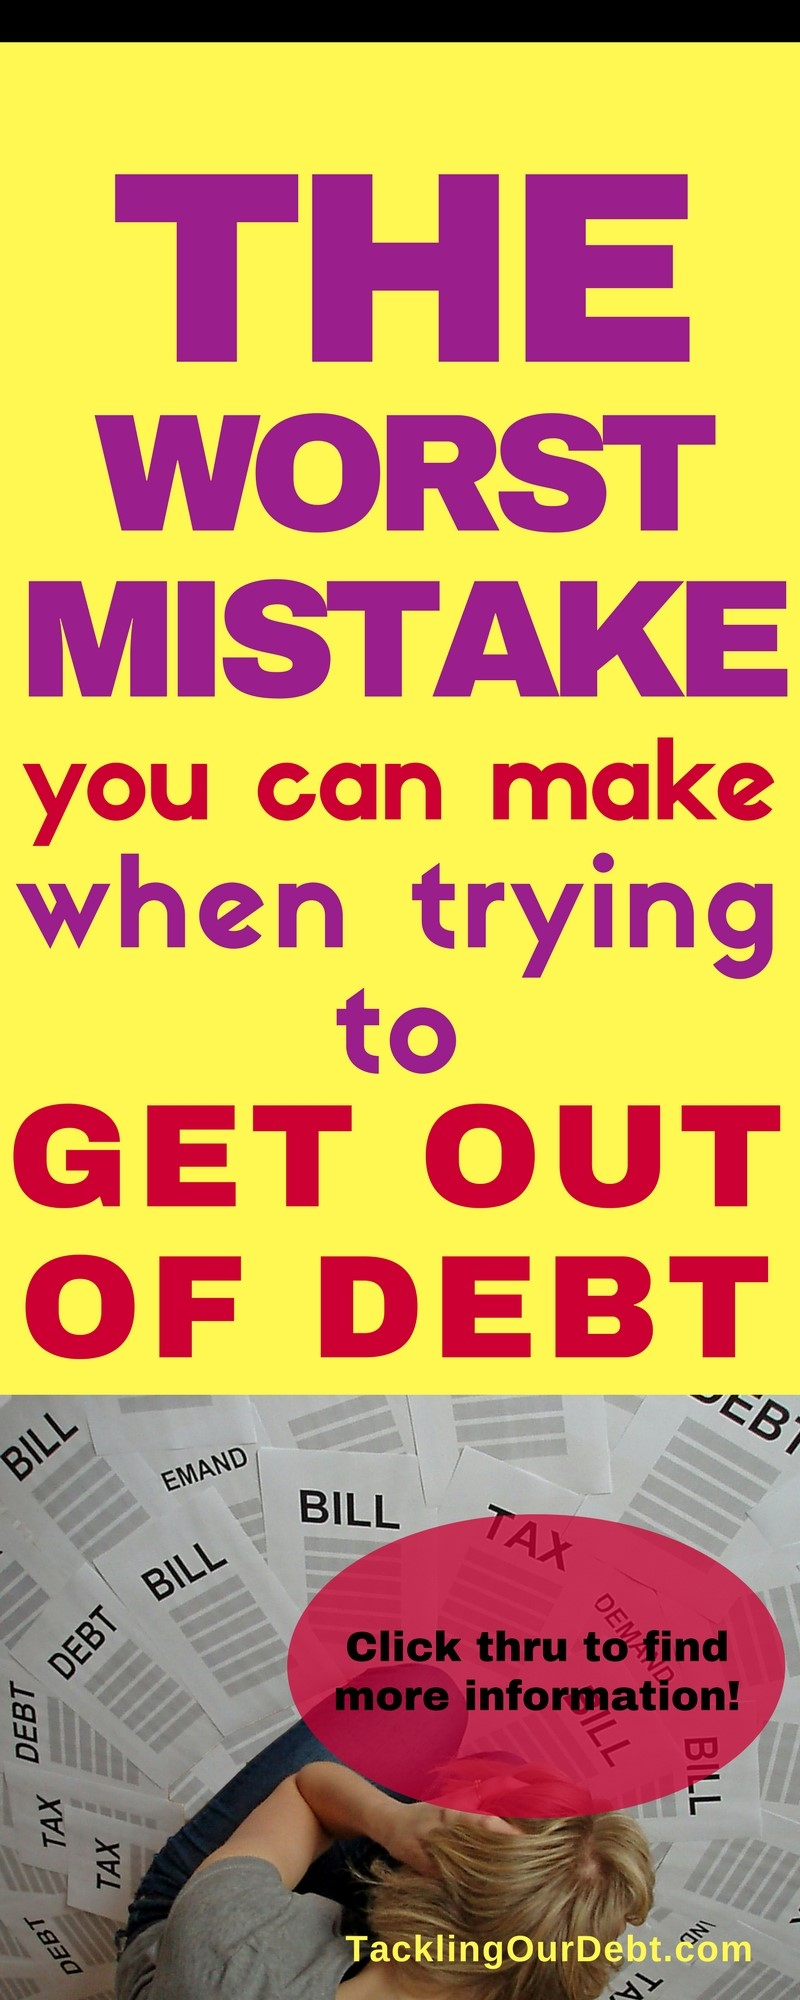 When in debt and trying to sort out your personal finances, this is the worst mistake you can make when trying to get out of debt.